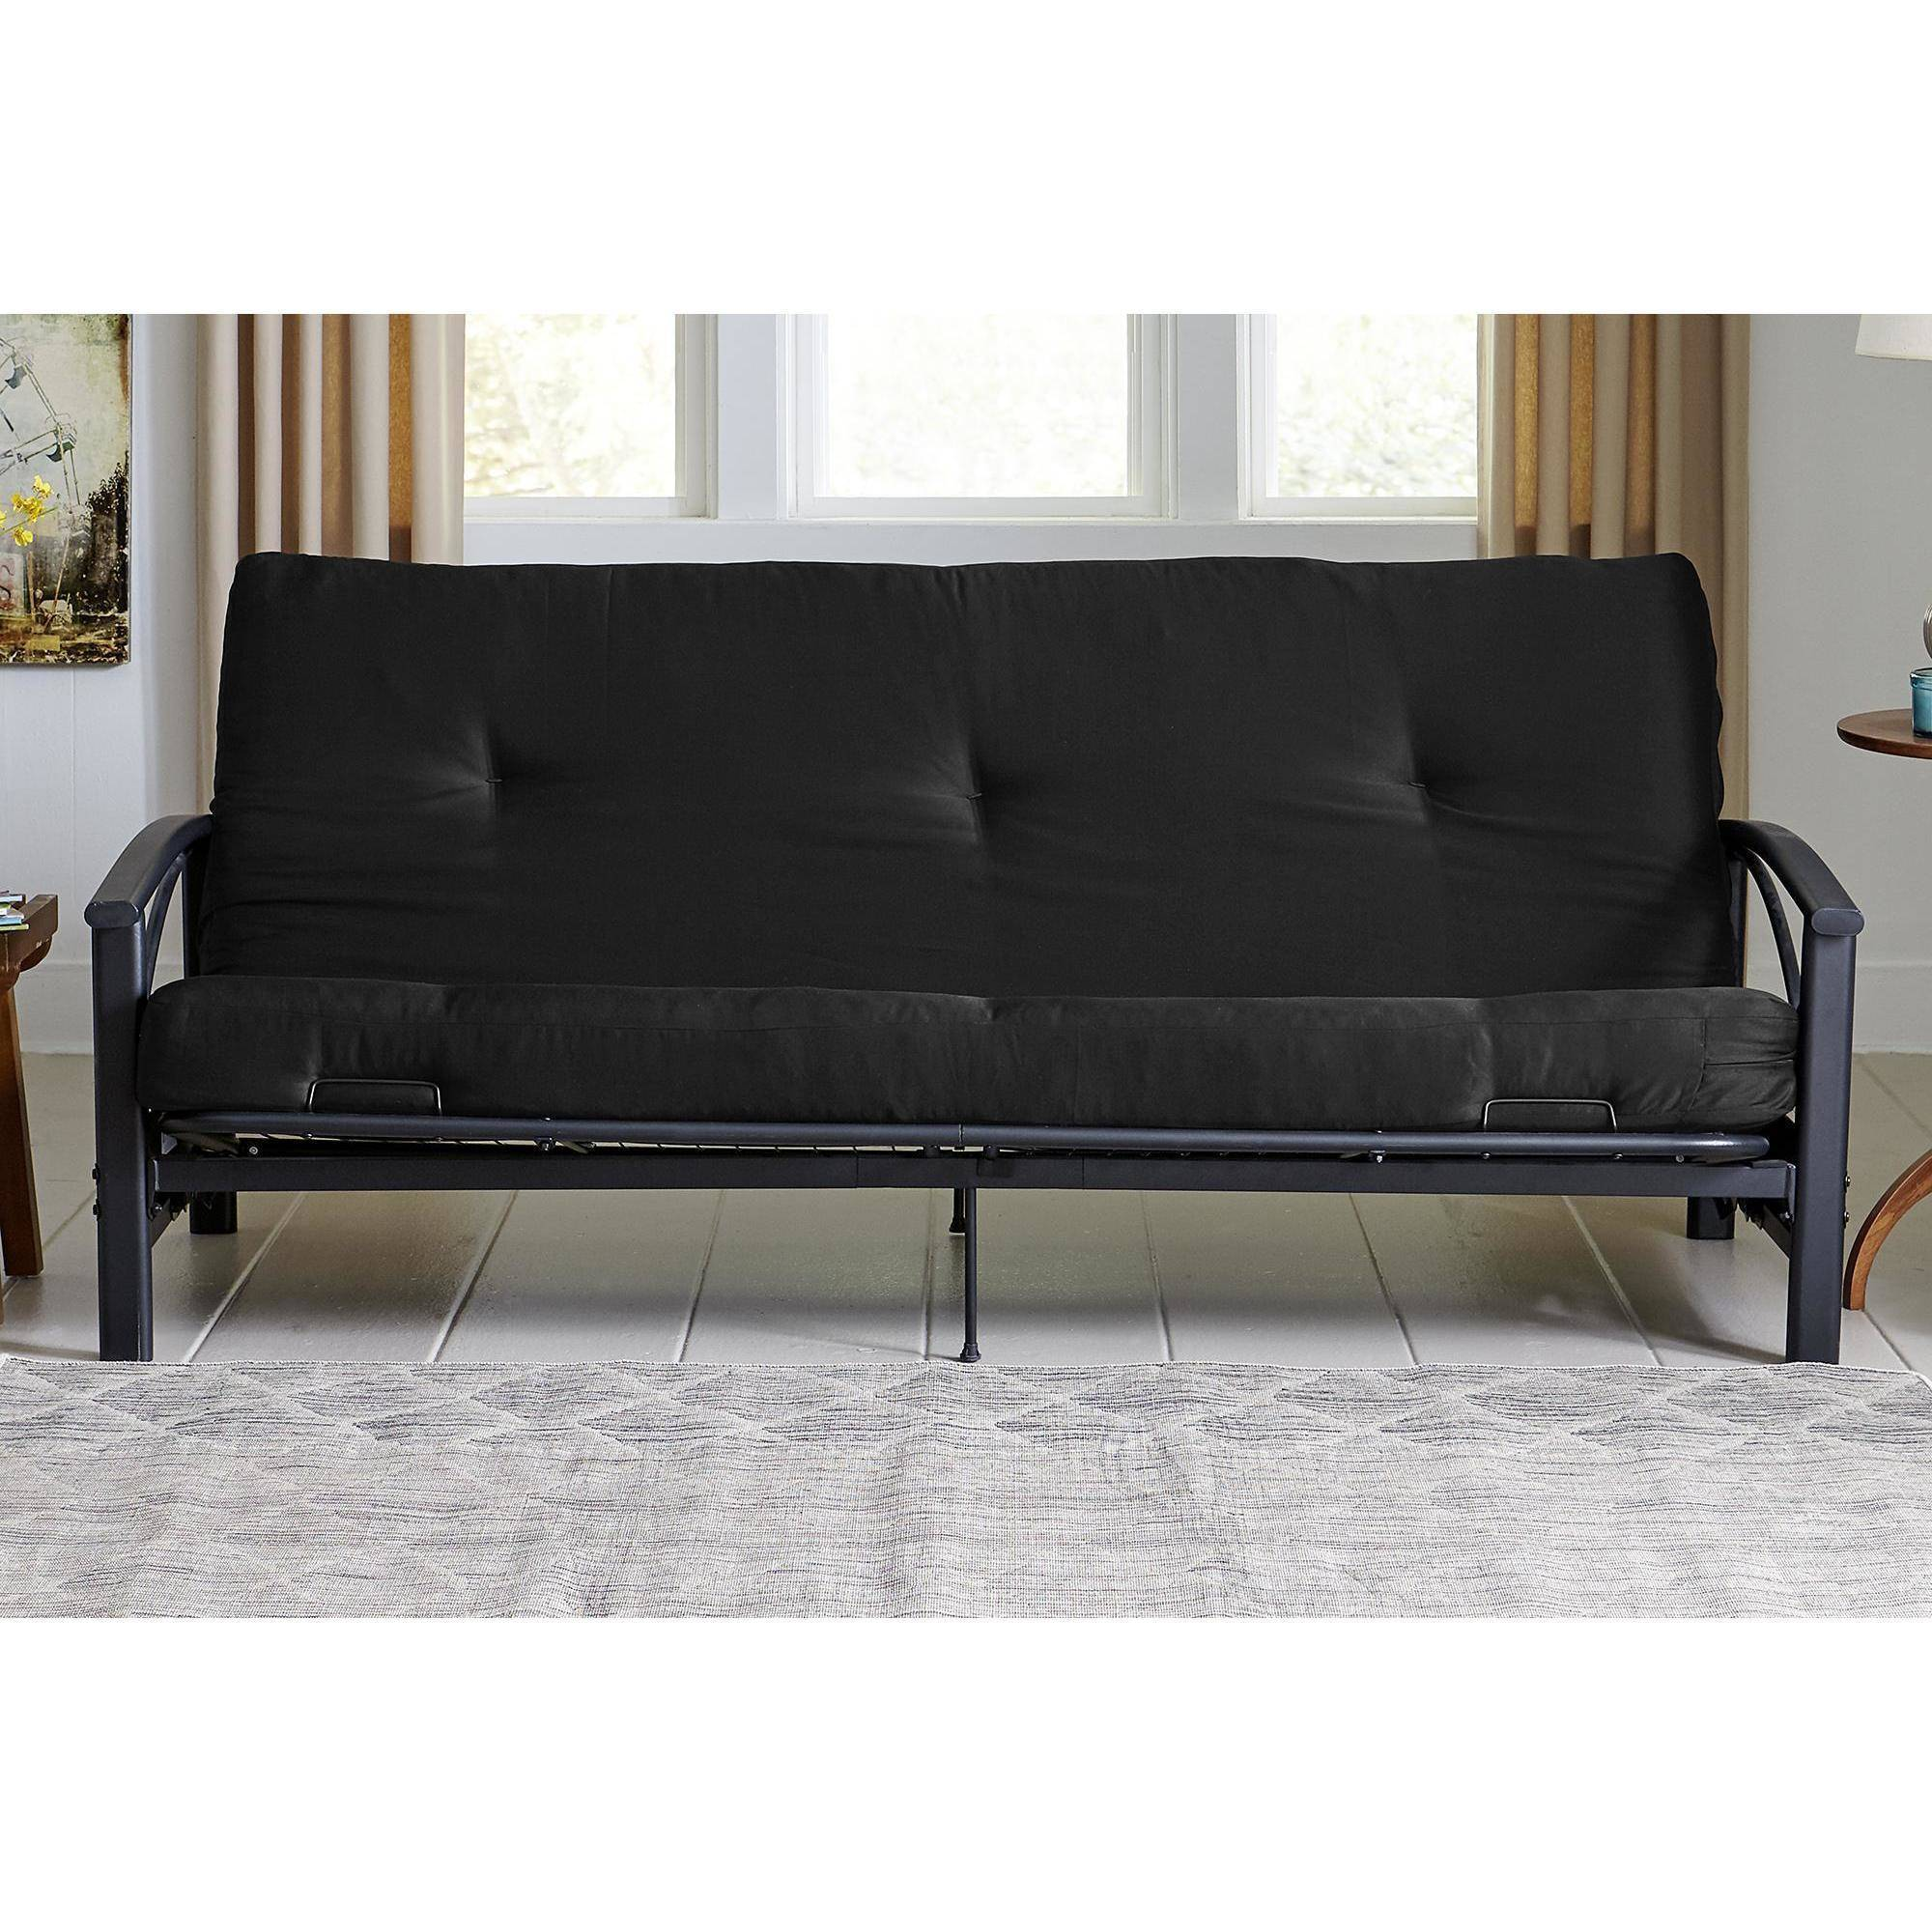 image nirvana solid arden beds queen futon pcr product size helpful in amazon frame reviews best hardwood customer rated futons com cheap